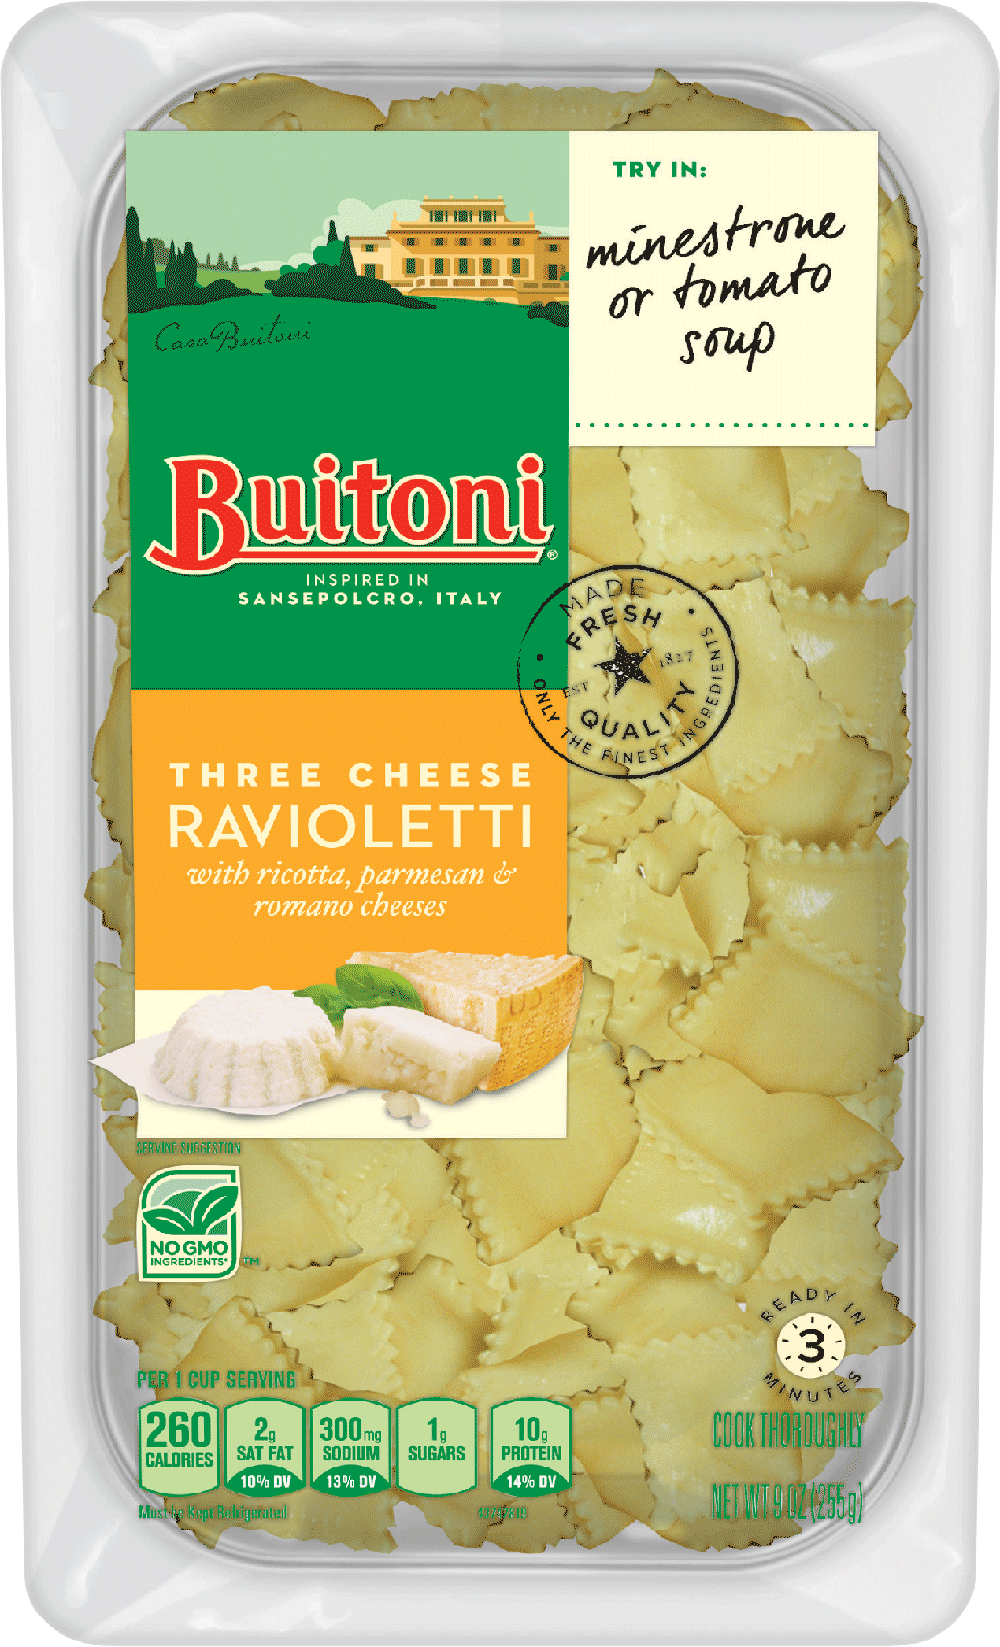 Three Cheese Ravioletti